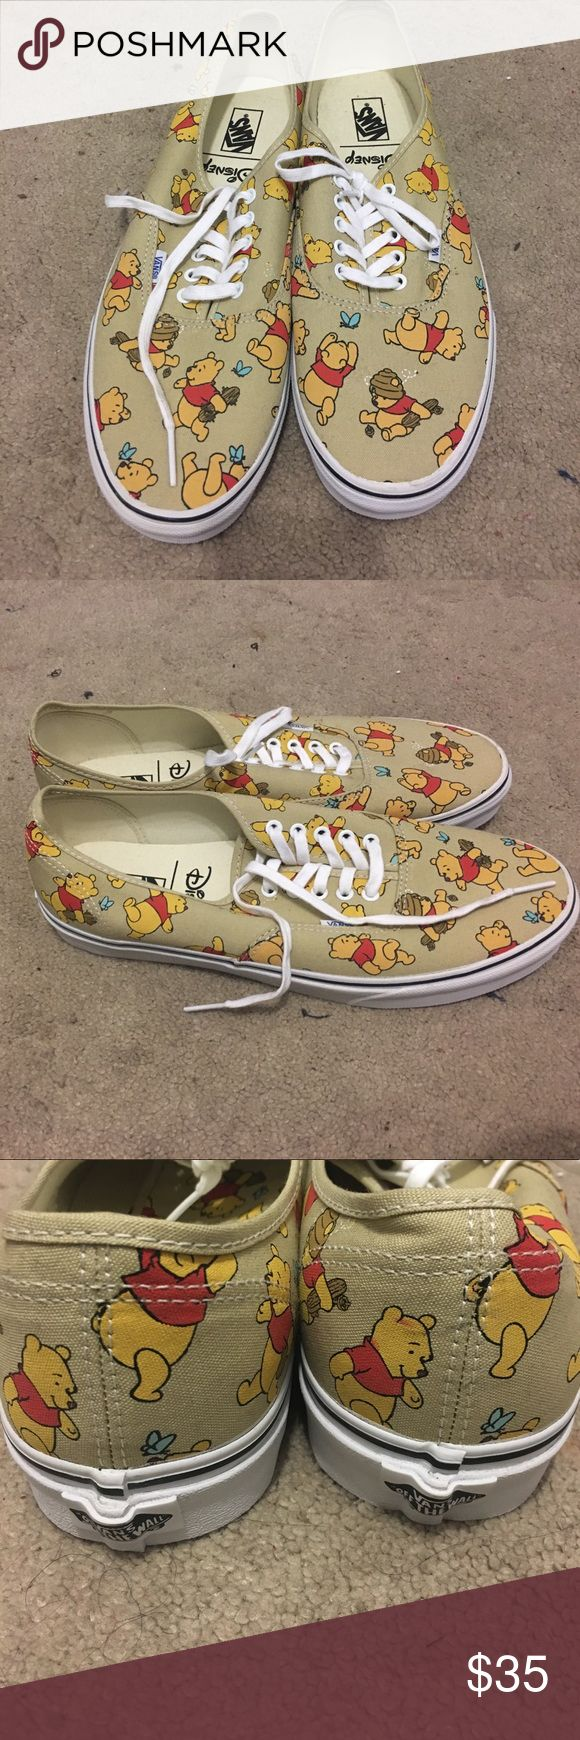 3/$45 VANS Winnie Pooh sneakers Mens 13 Purchased from vans store for my bf but they didnt fit him his loss yall gain super cute winnie the pooh design never worn BRAND NEW without box  MENS size 13 Vans Shoes Sneakers